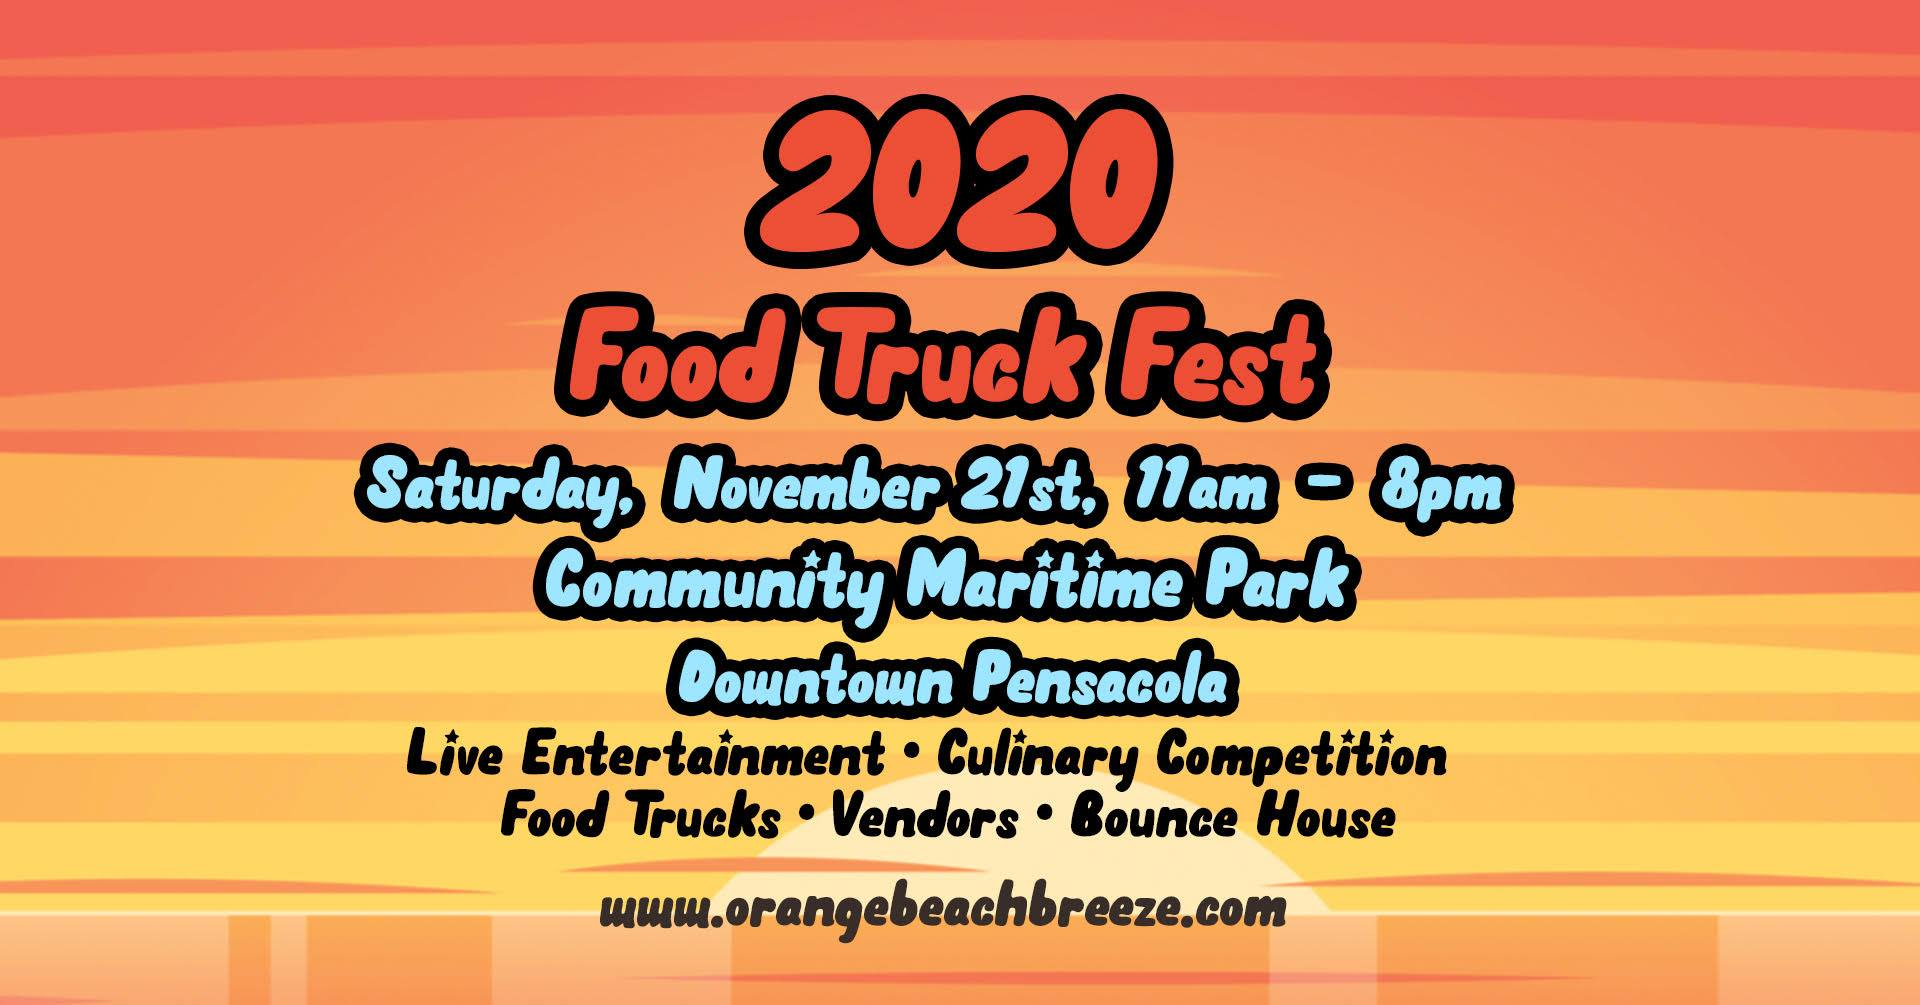 2020 Food Truck Festival